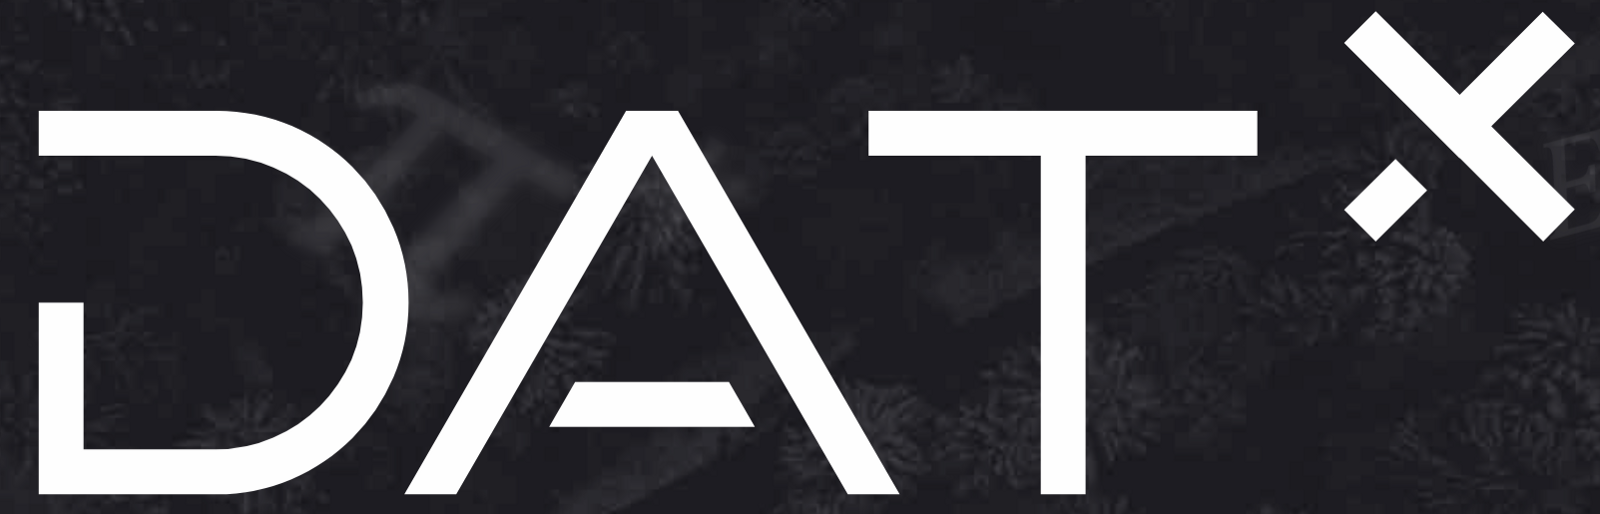 /datx-a-blockchain-powered-decentralized-advertising-ecosystem-71fb944b02ea feature image